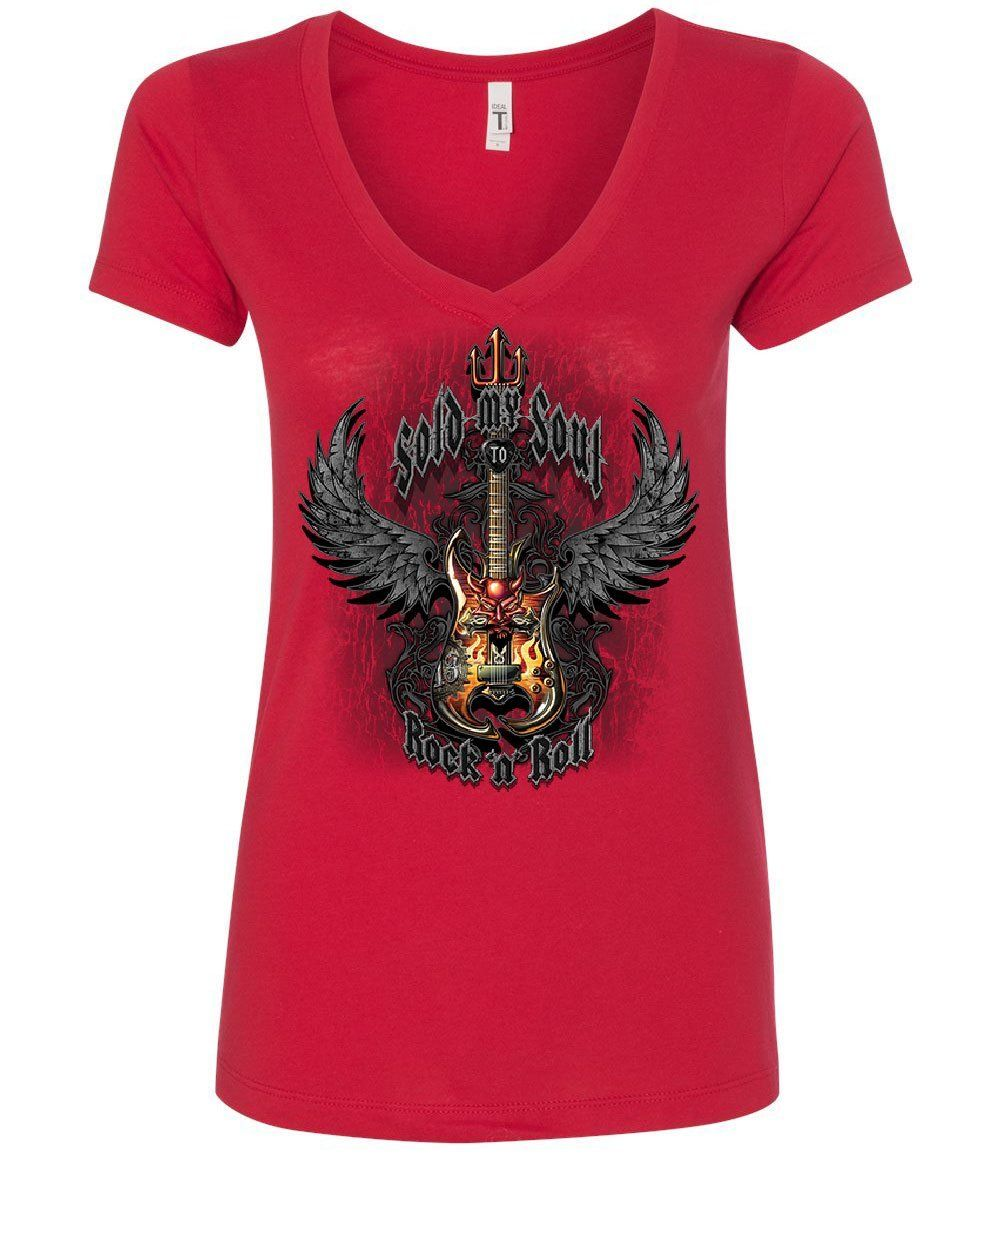 Sold My Soul to Rock /& Roll Women/'s V-Neck T-Shirt Demon Guitar Wings Trident